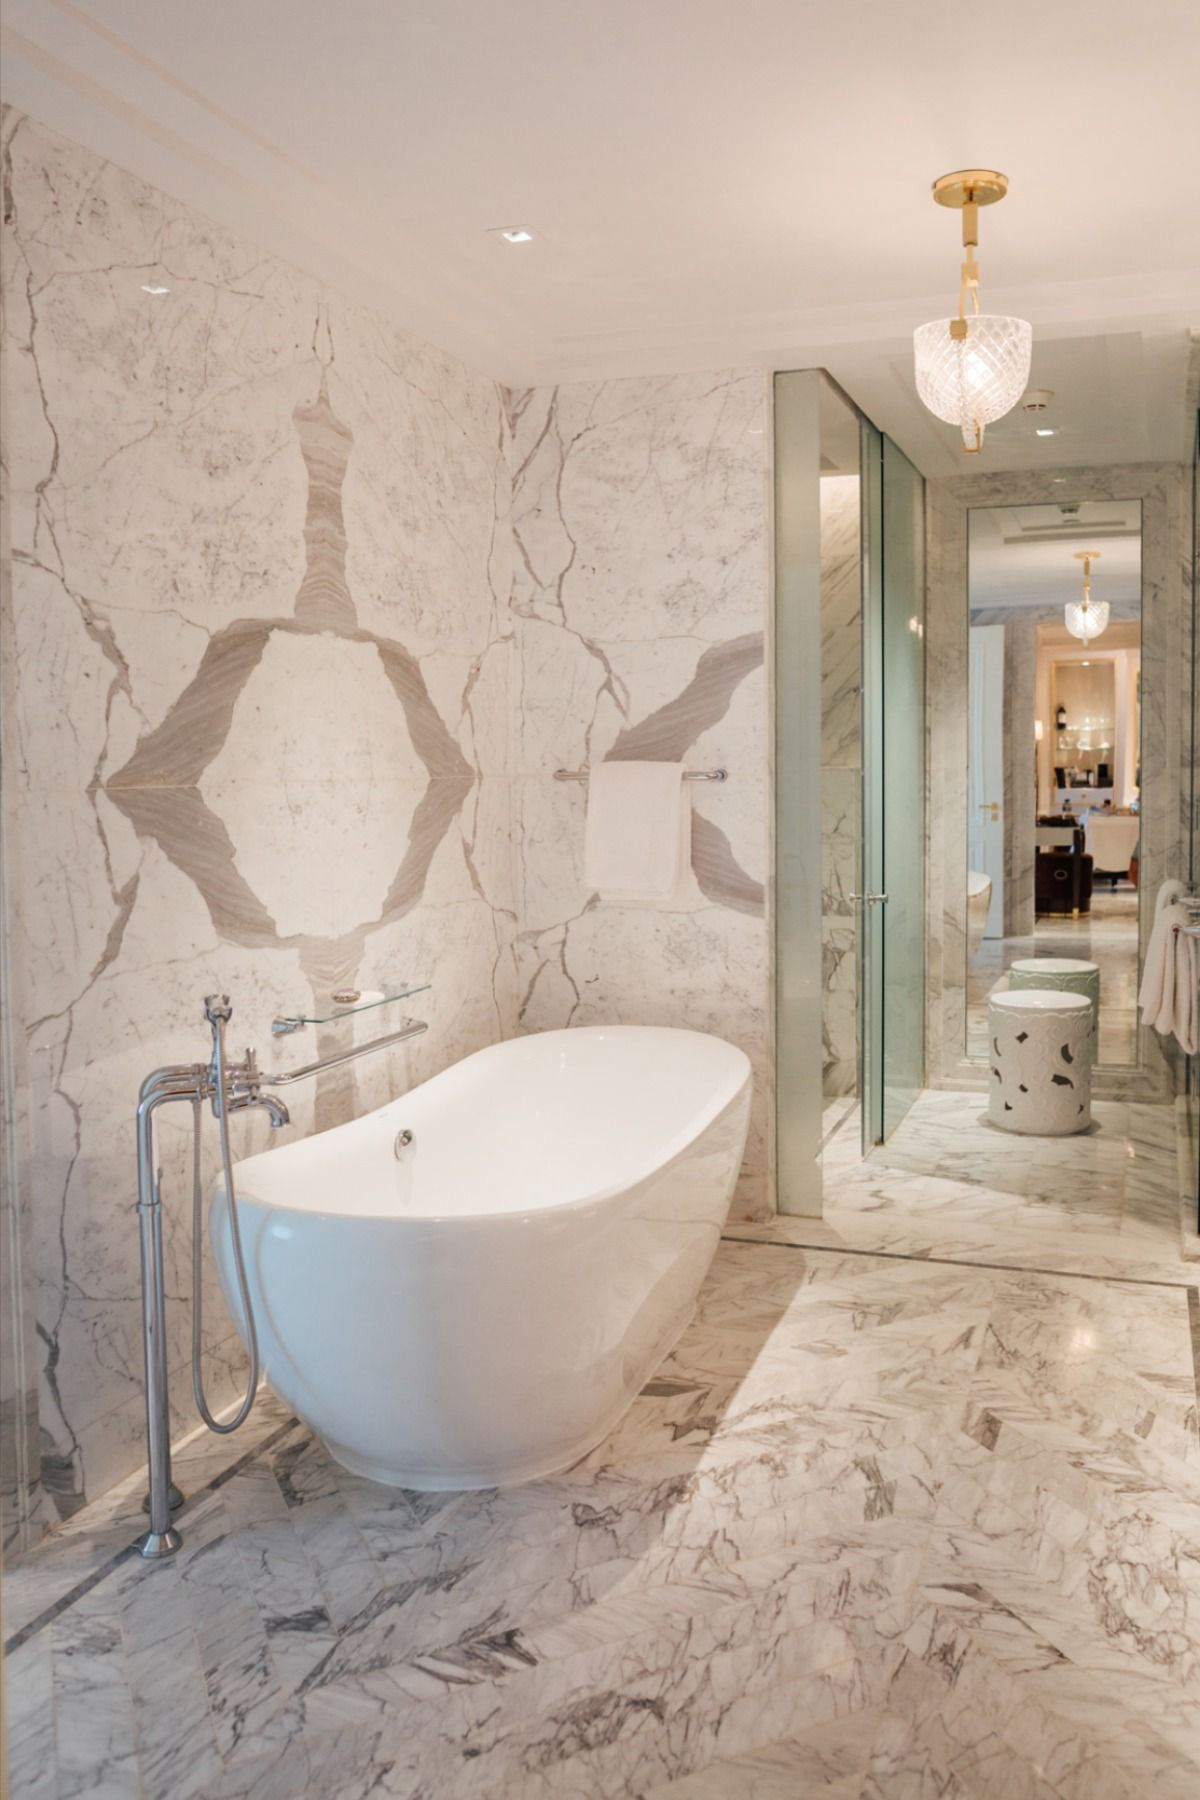 Are You Looking For Inspiration And Ideas For Your Next Marble